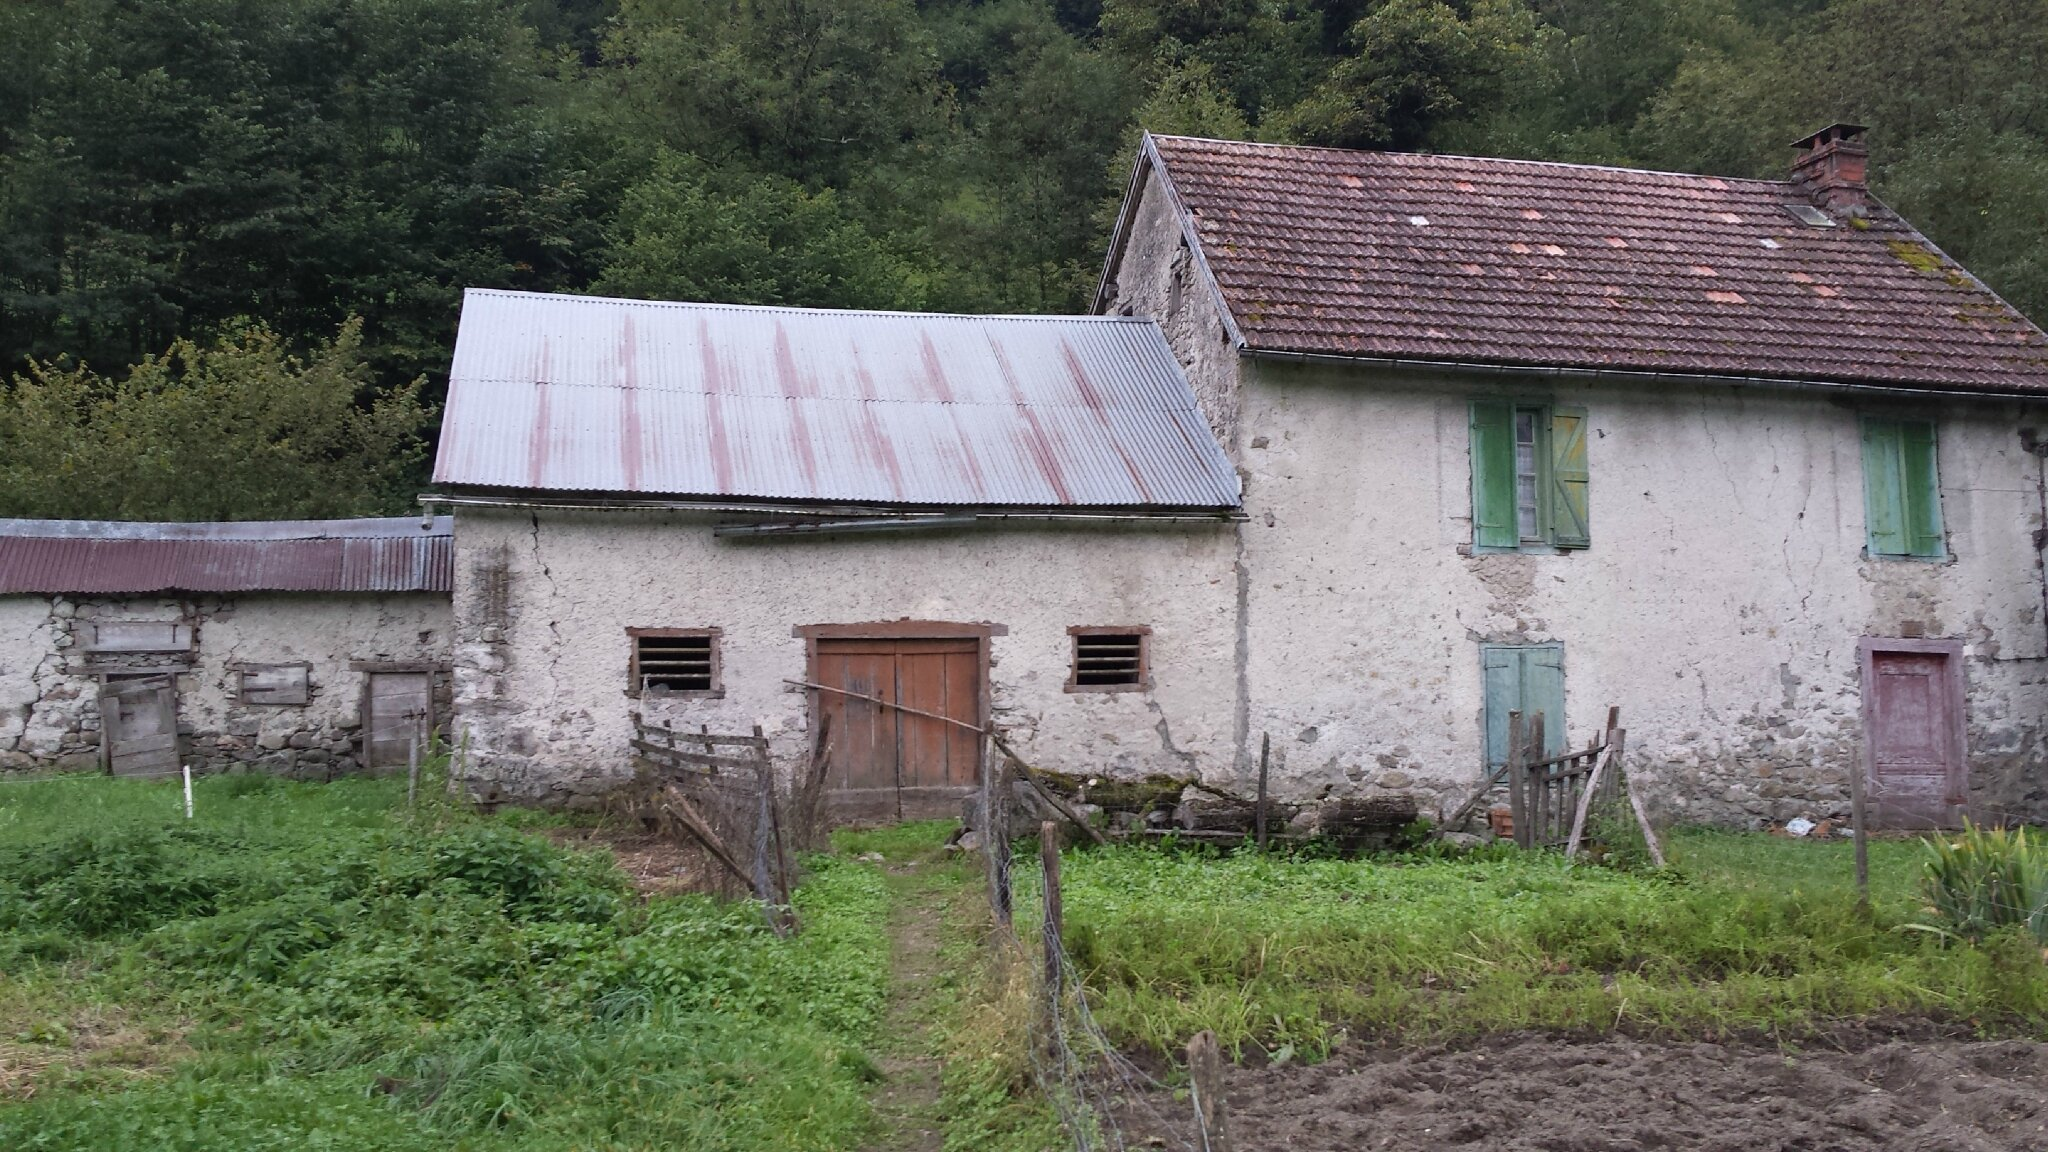 Notre acquisition renovation de notre maison en ariege for Acquisition maison